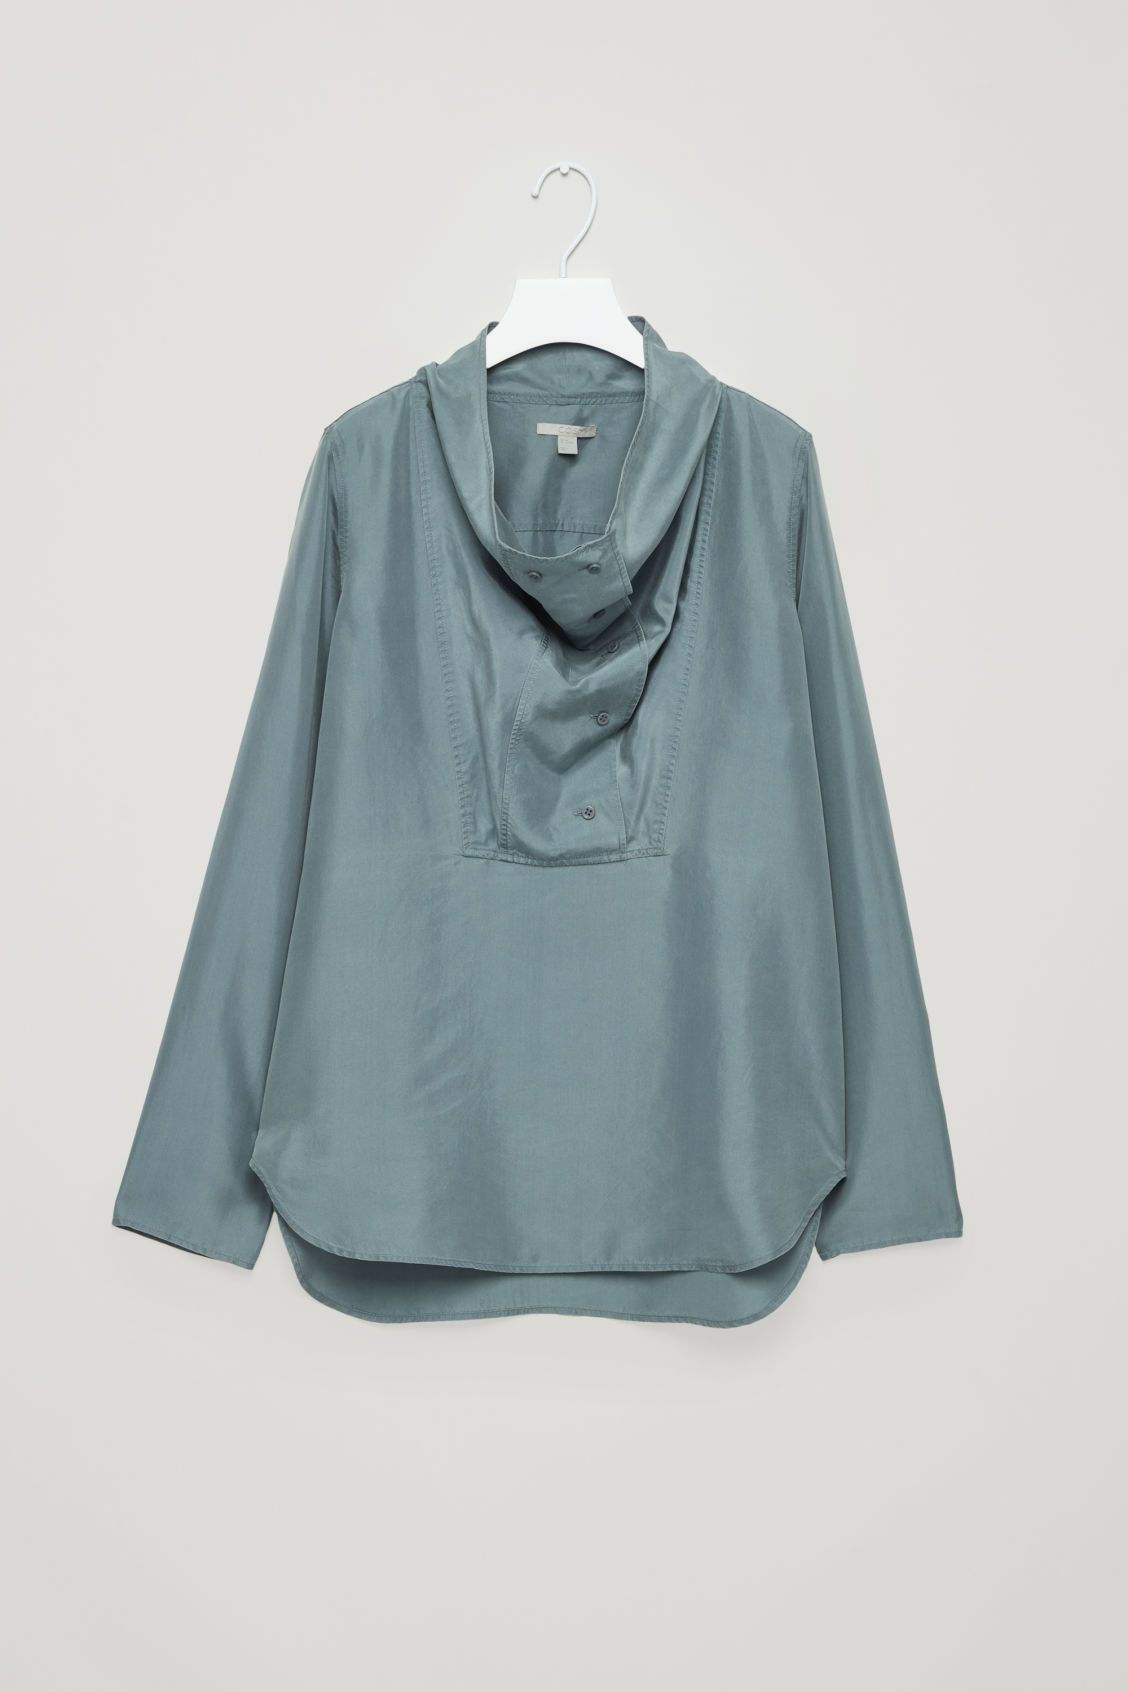 Cos green dress 2018  Front image of Cos silk shirt with draped neck in blue  Cos